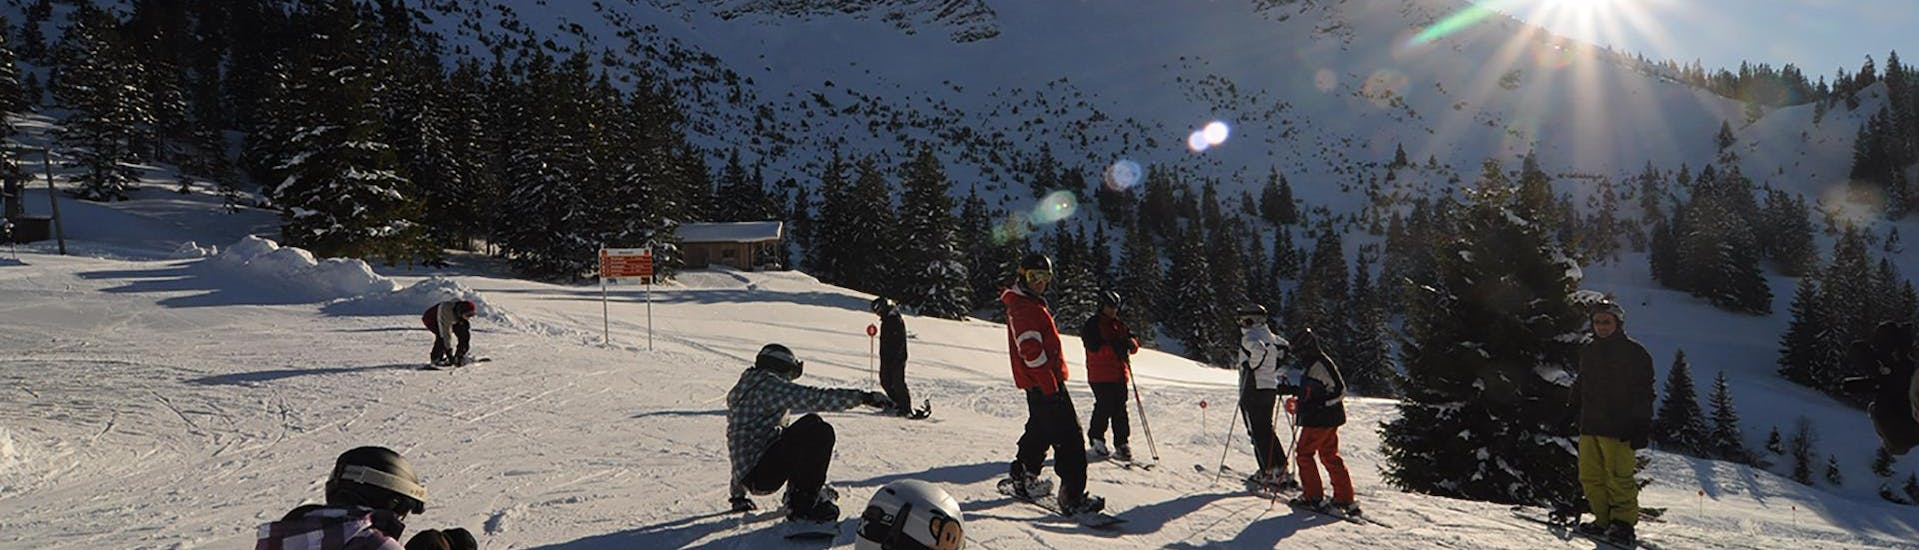 Kids Snowboarding Lessons (7-12 y.) for All Levels with Ski & Snowboard School Ostrachtal - Hero image